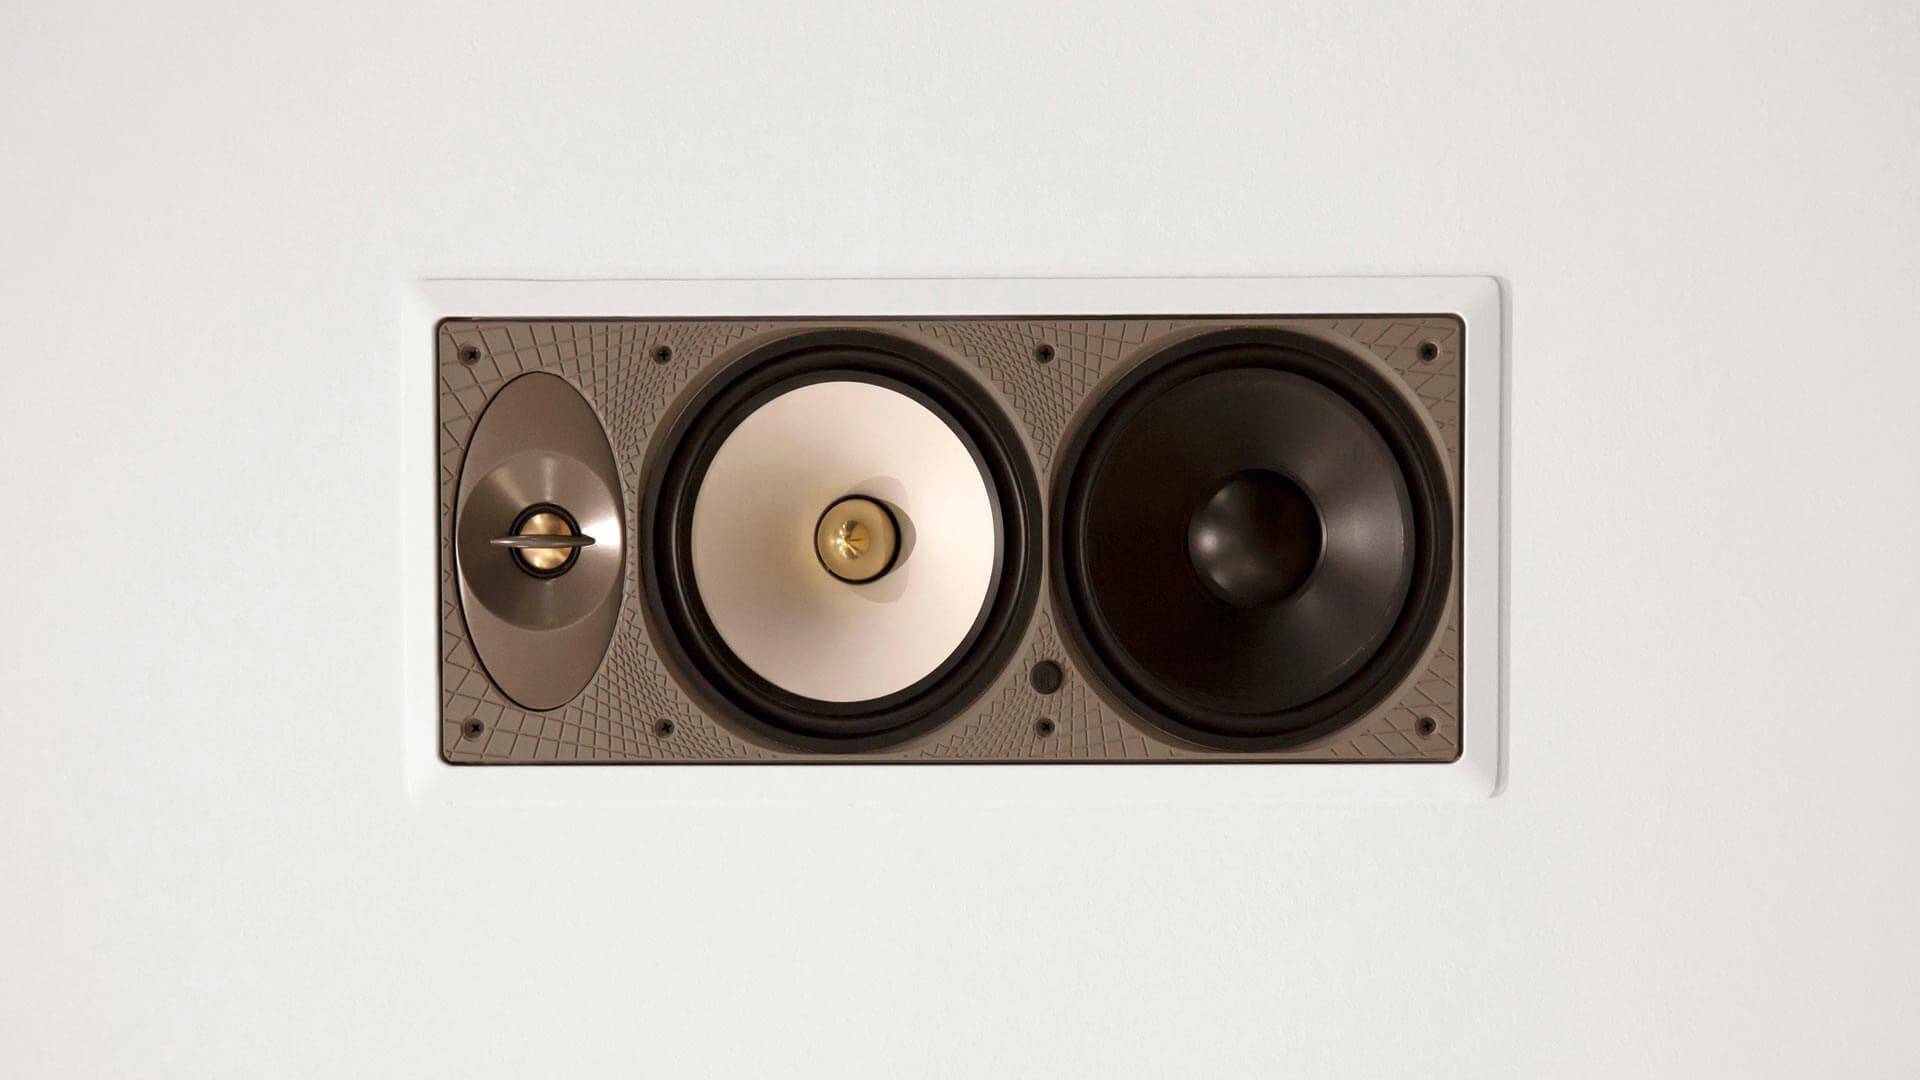 Wall speaker cover is removed to highlight speaker detail - White Modern Art - Minimalist Modern - Indian Head Park - Chicago, Illinois - HAUS | Architecture For Modern Lifestyles, Christopher Short, Indianapolis Architect with Joe Trojanowski